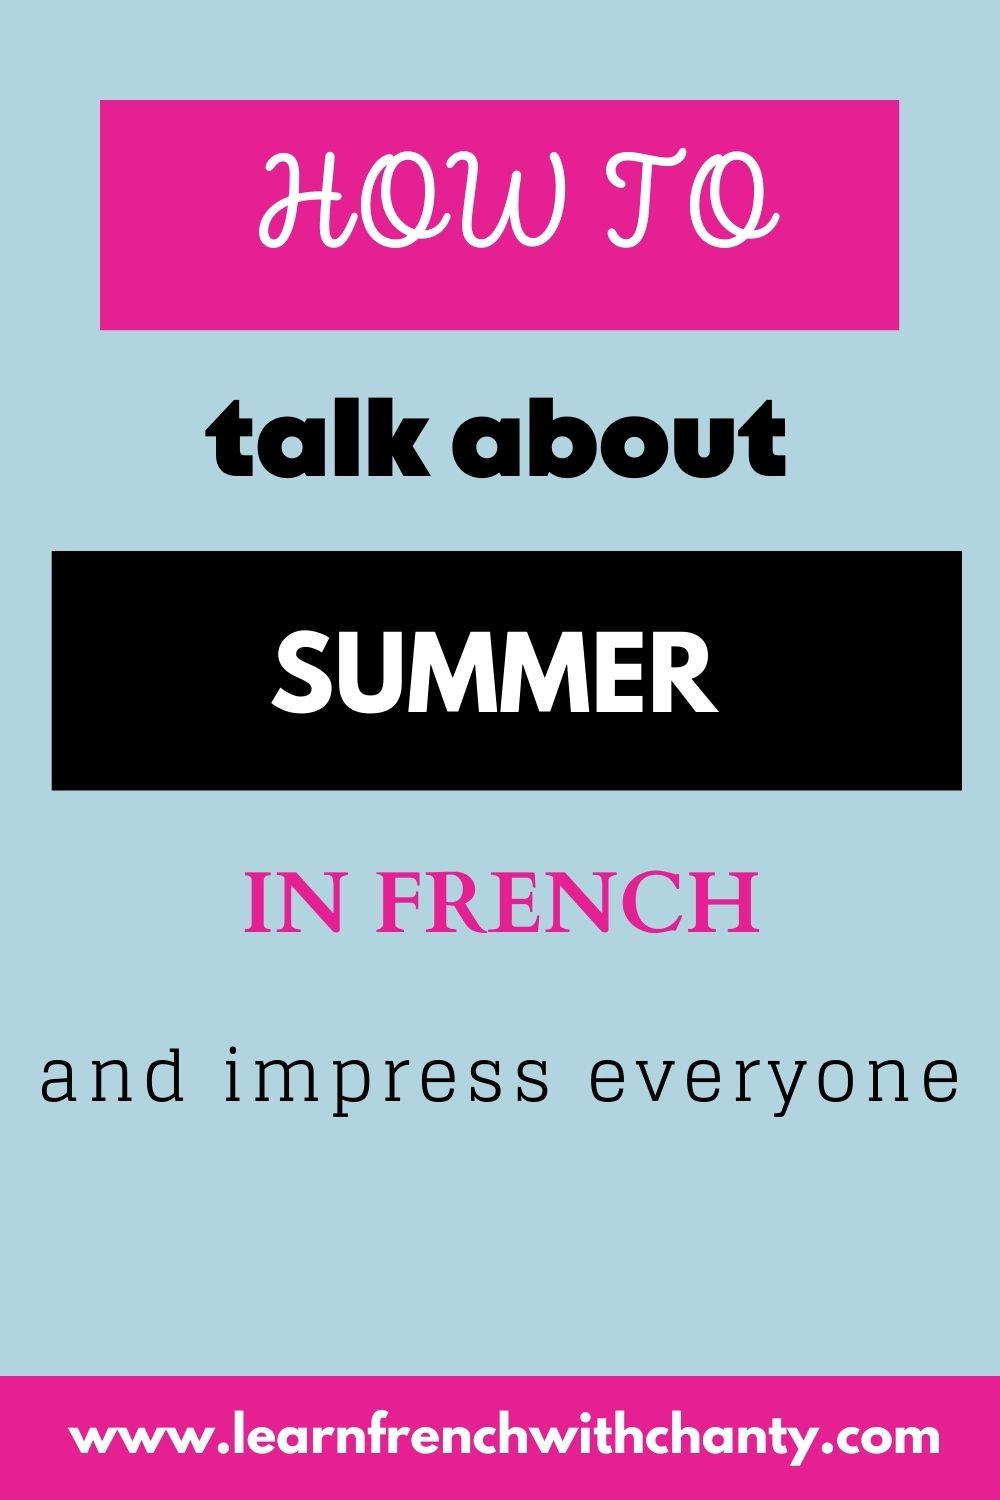 How to talk about summer in french and impress everyone